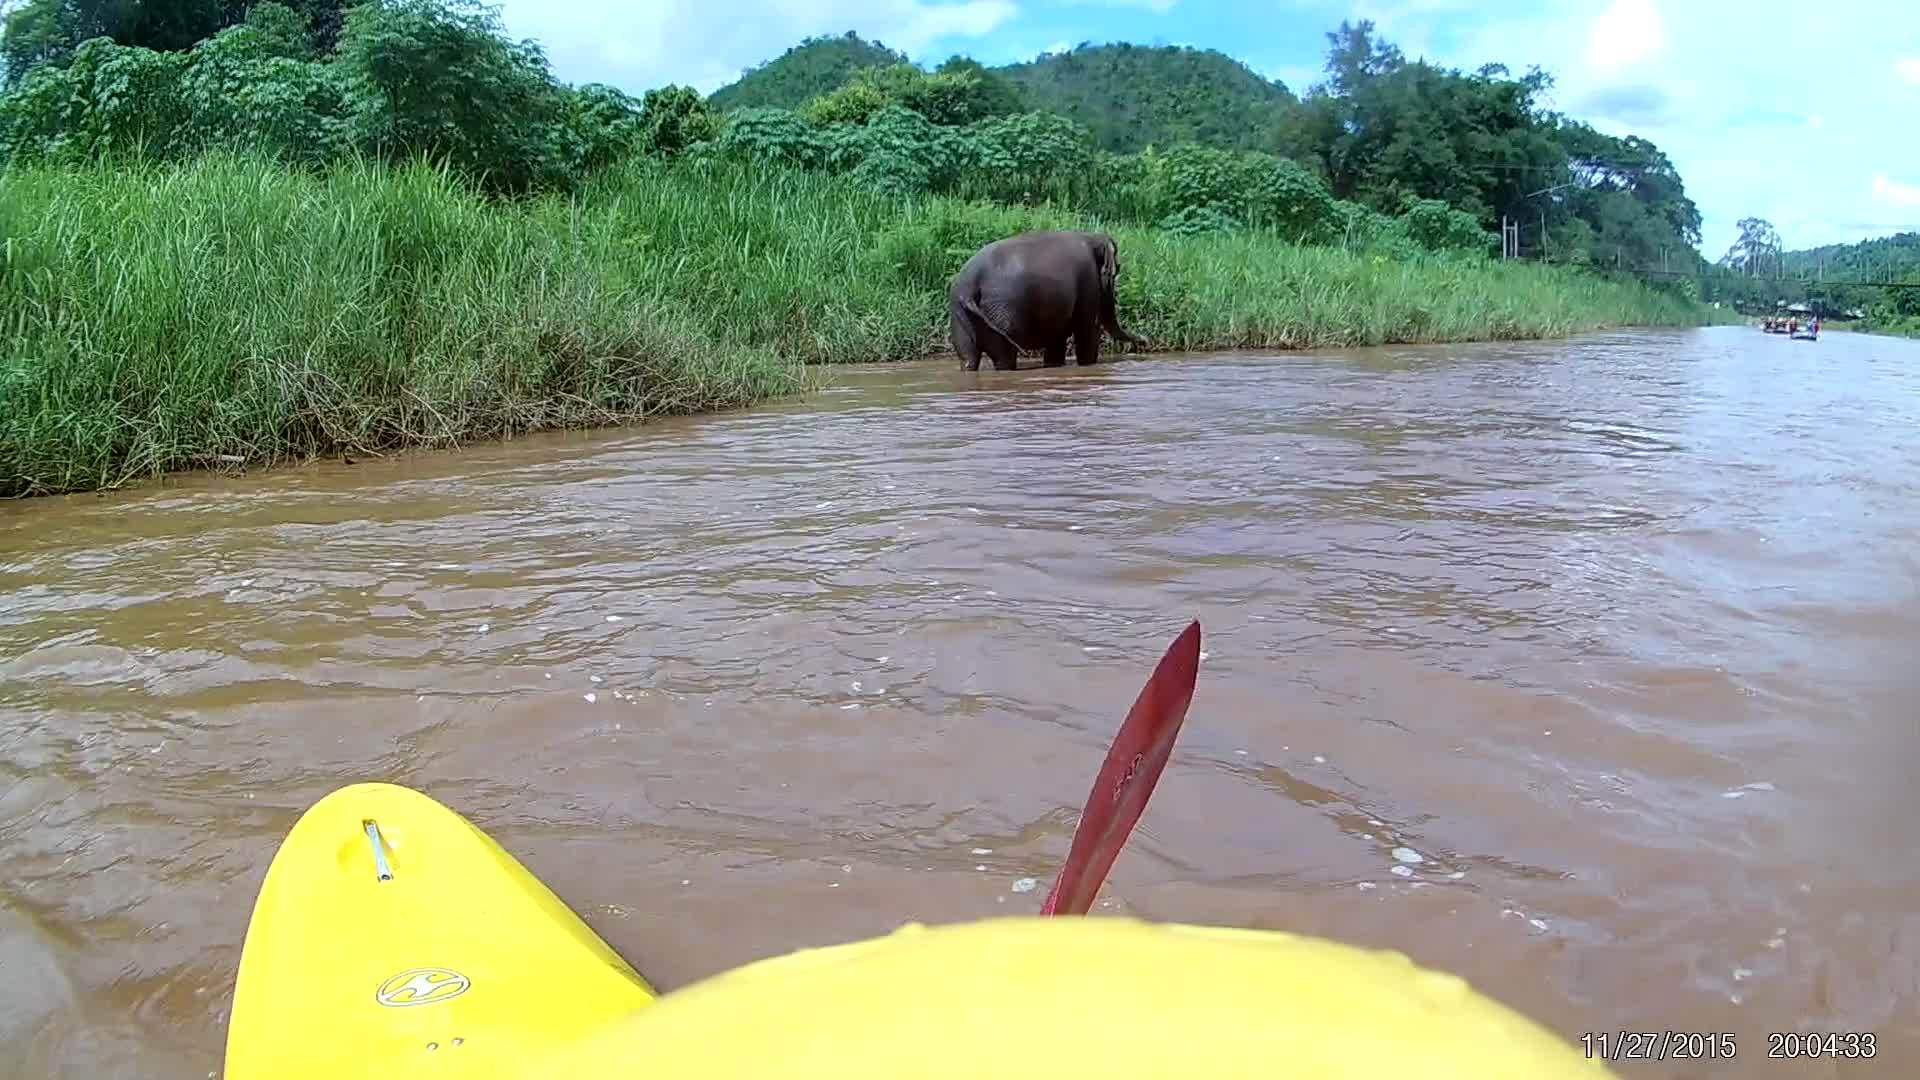 elephant, kayaking, Made a new friend in Thailand GIFs